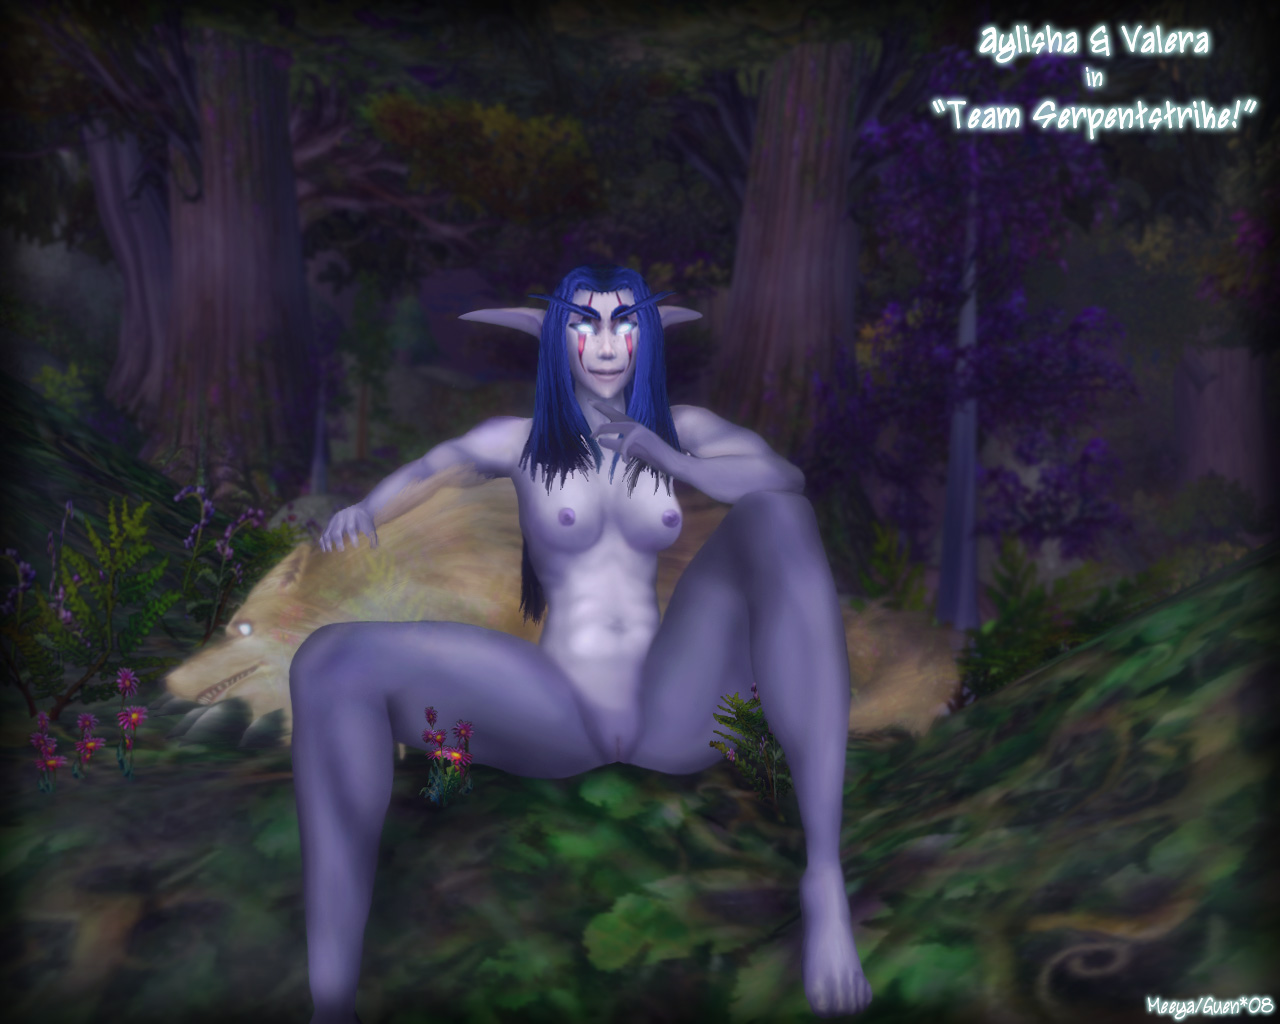 Naked warcraft pandaren girl seks boobs exploited scene